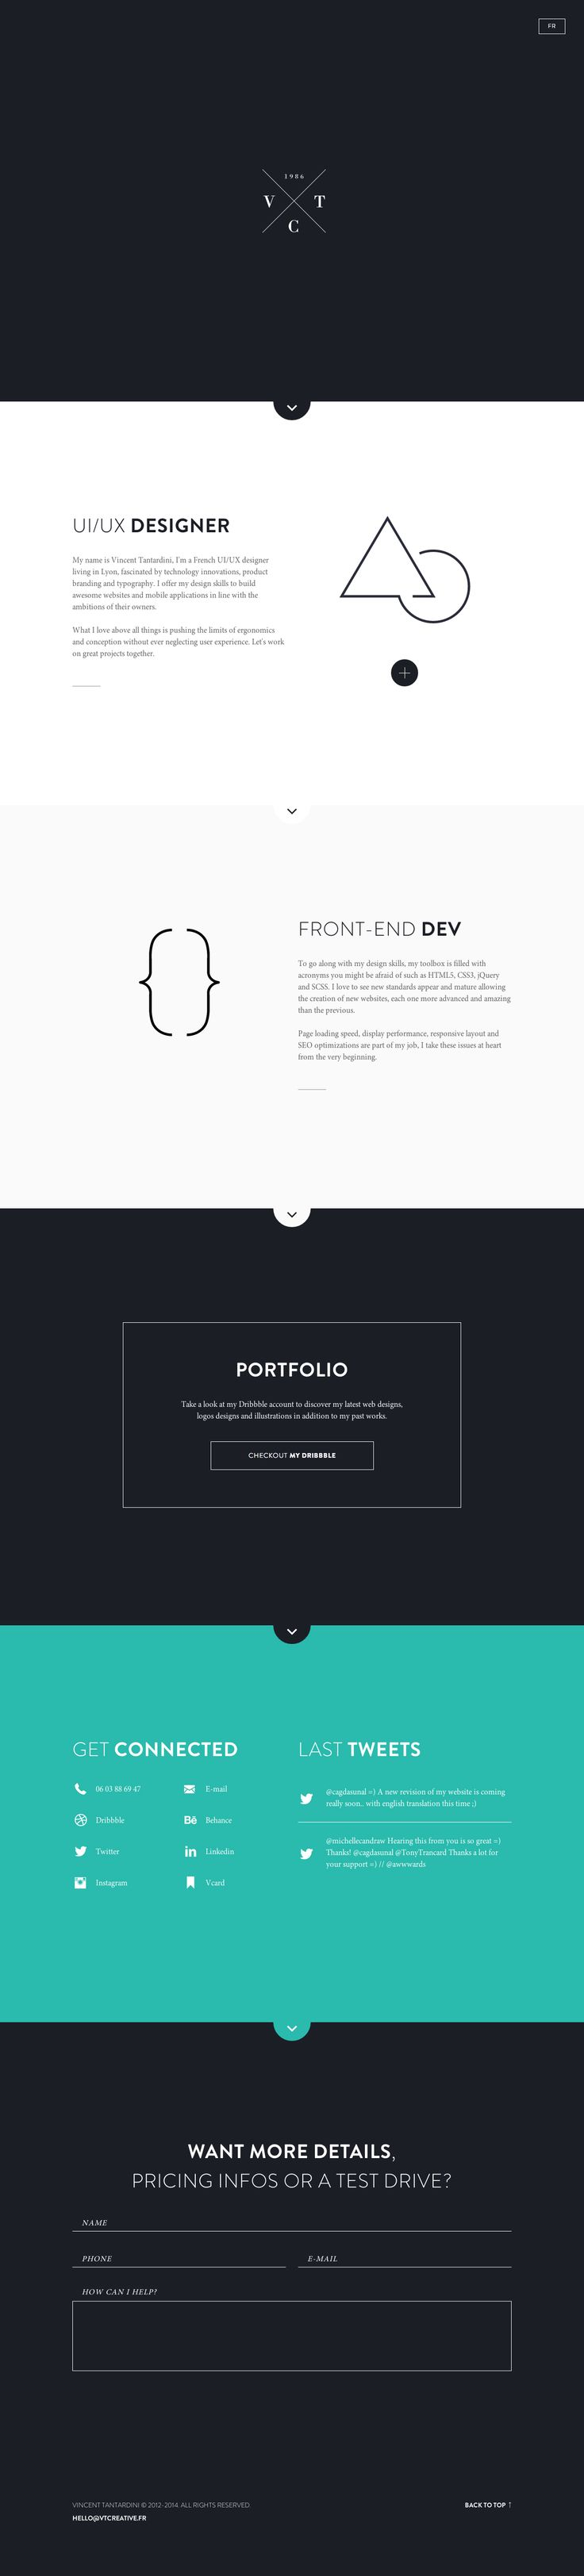 Very nice and minimal design.